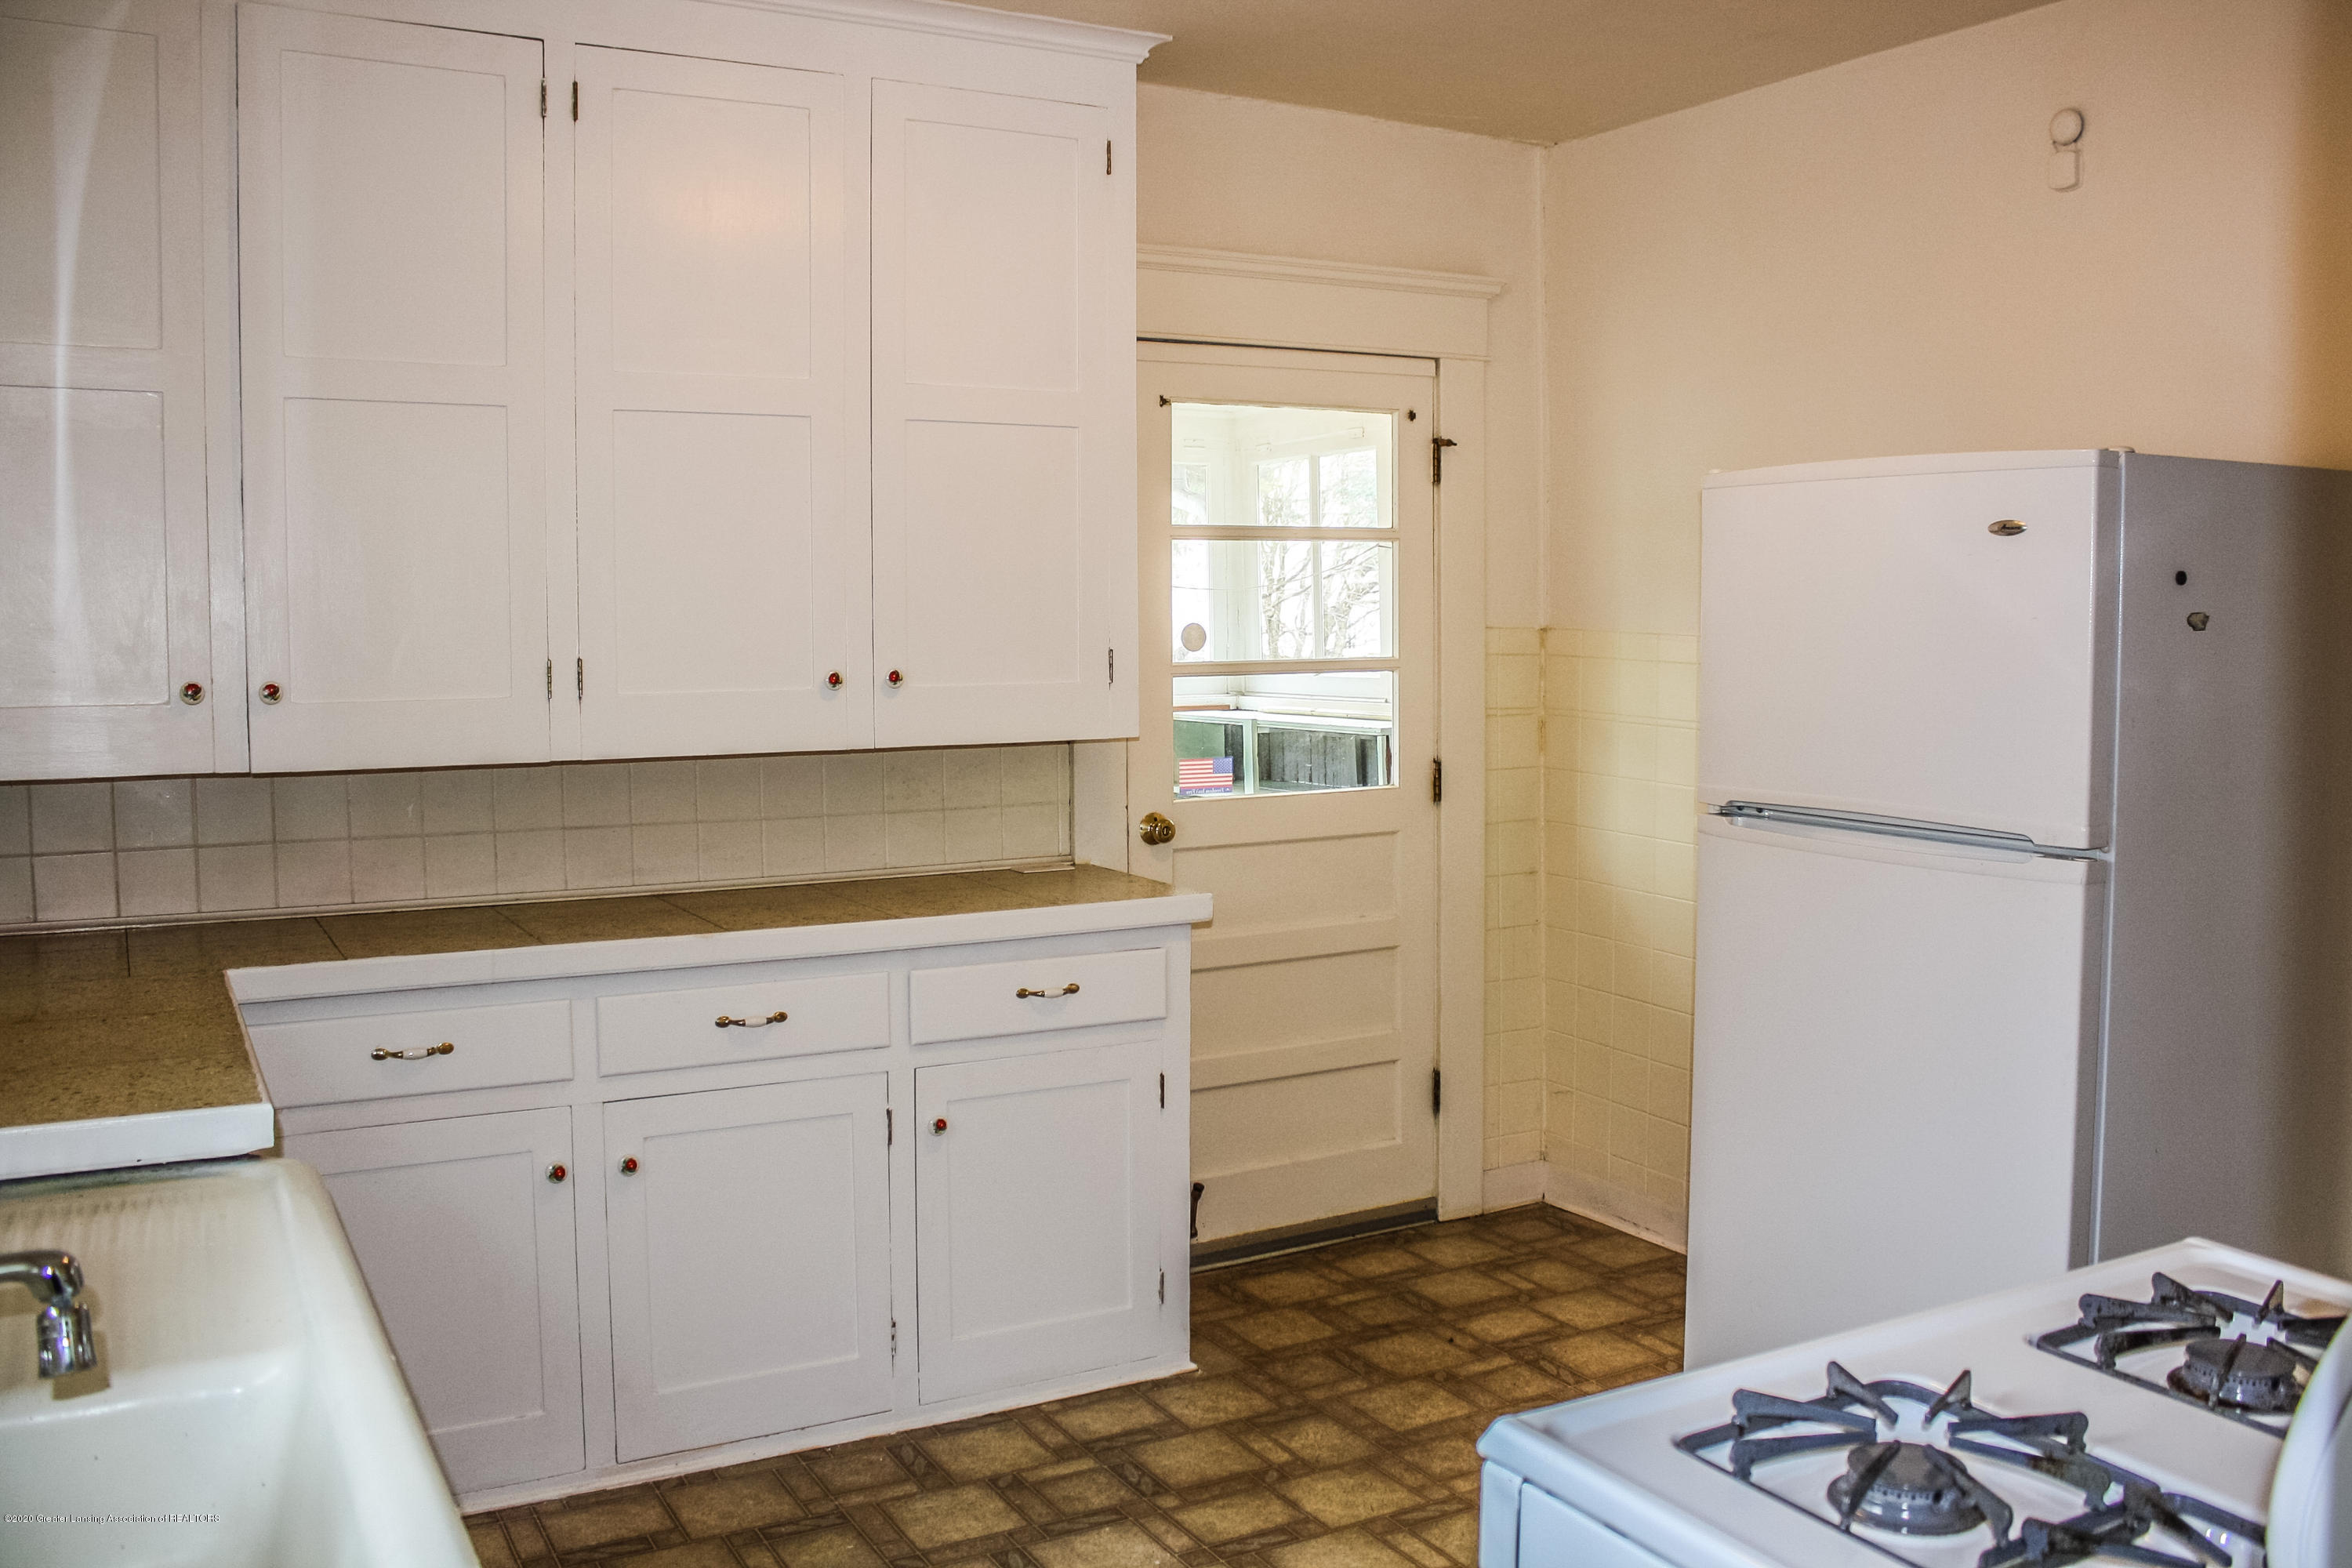 313 S Clemens Ave - Kitchen - 10